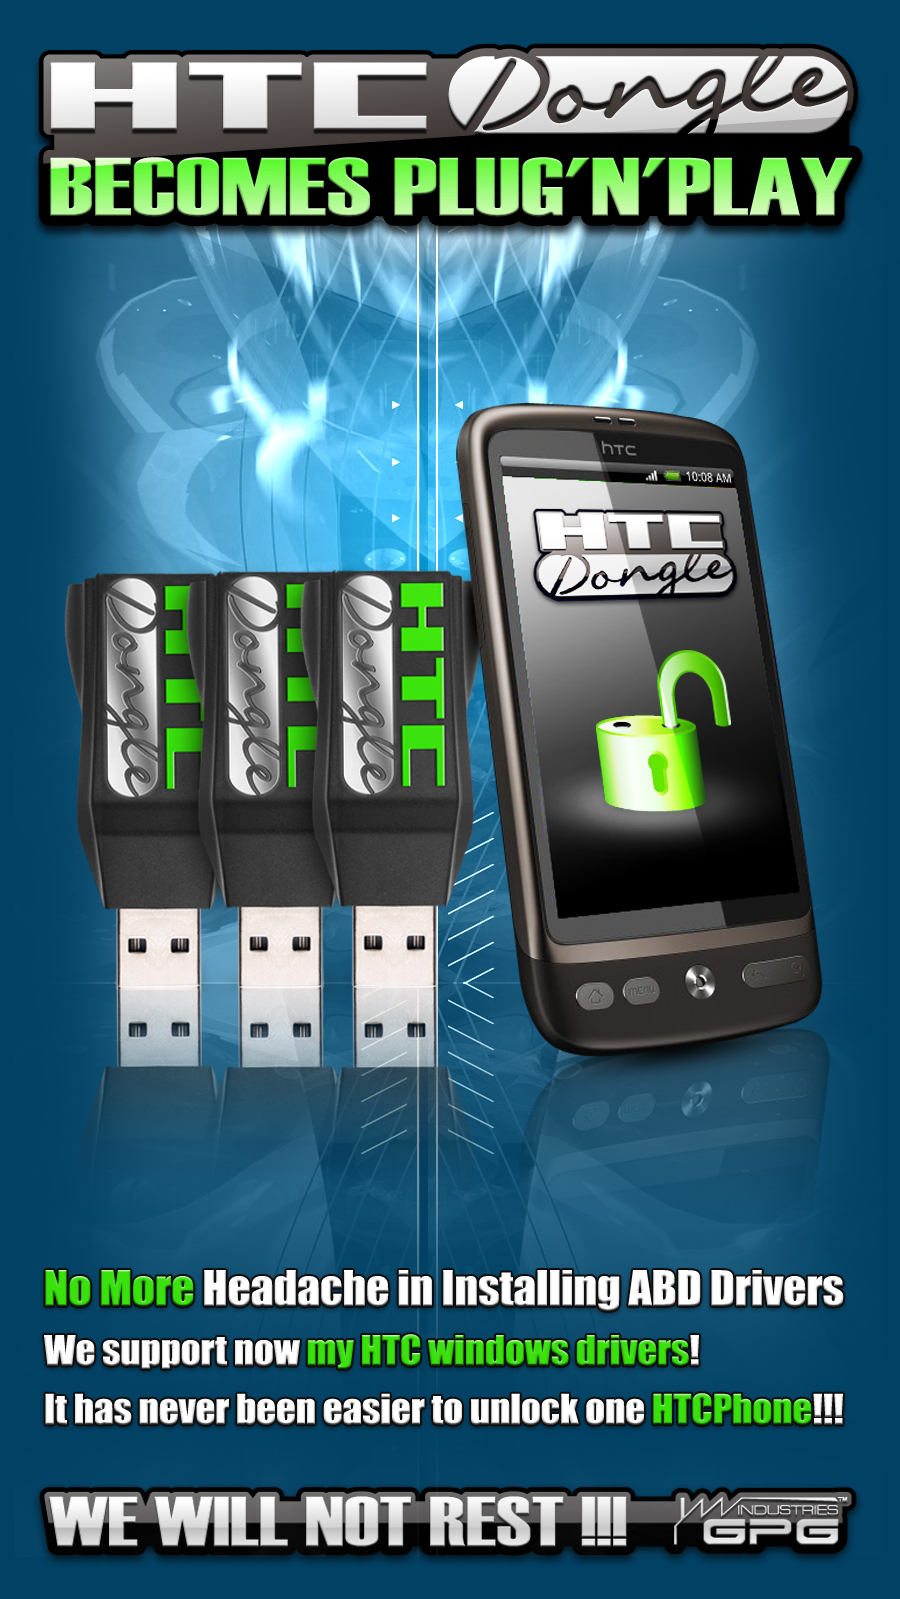 HTCDongle 1.18! MYHTC drivers support added!! Real Plug'n'Play HTC Tool